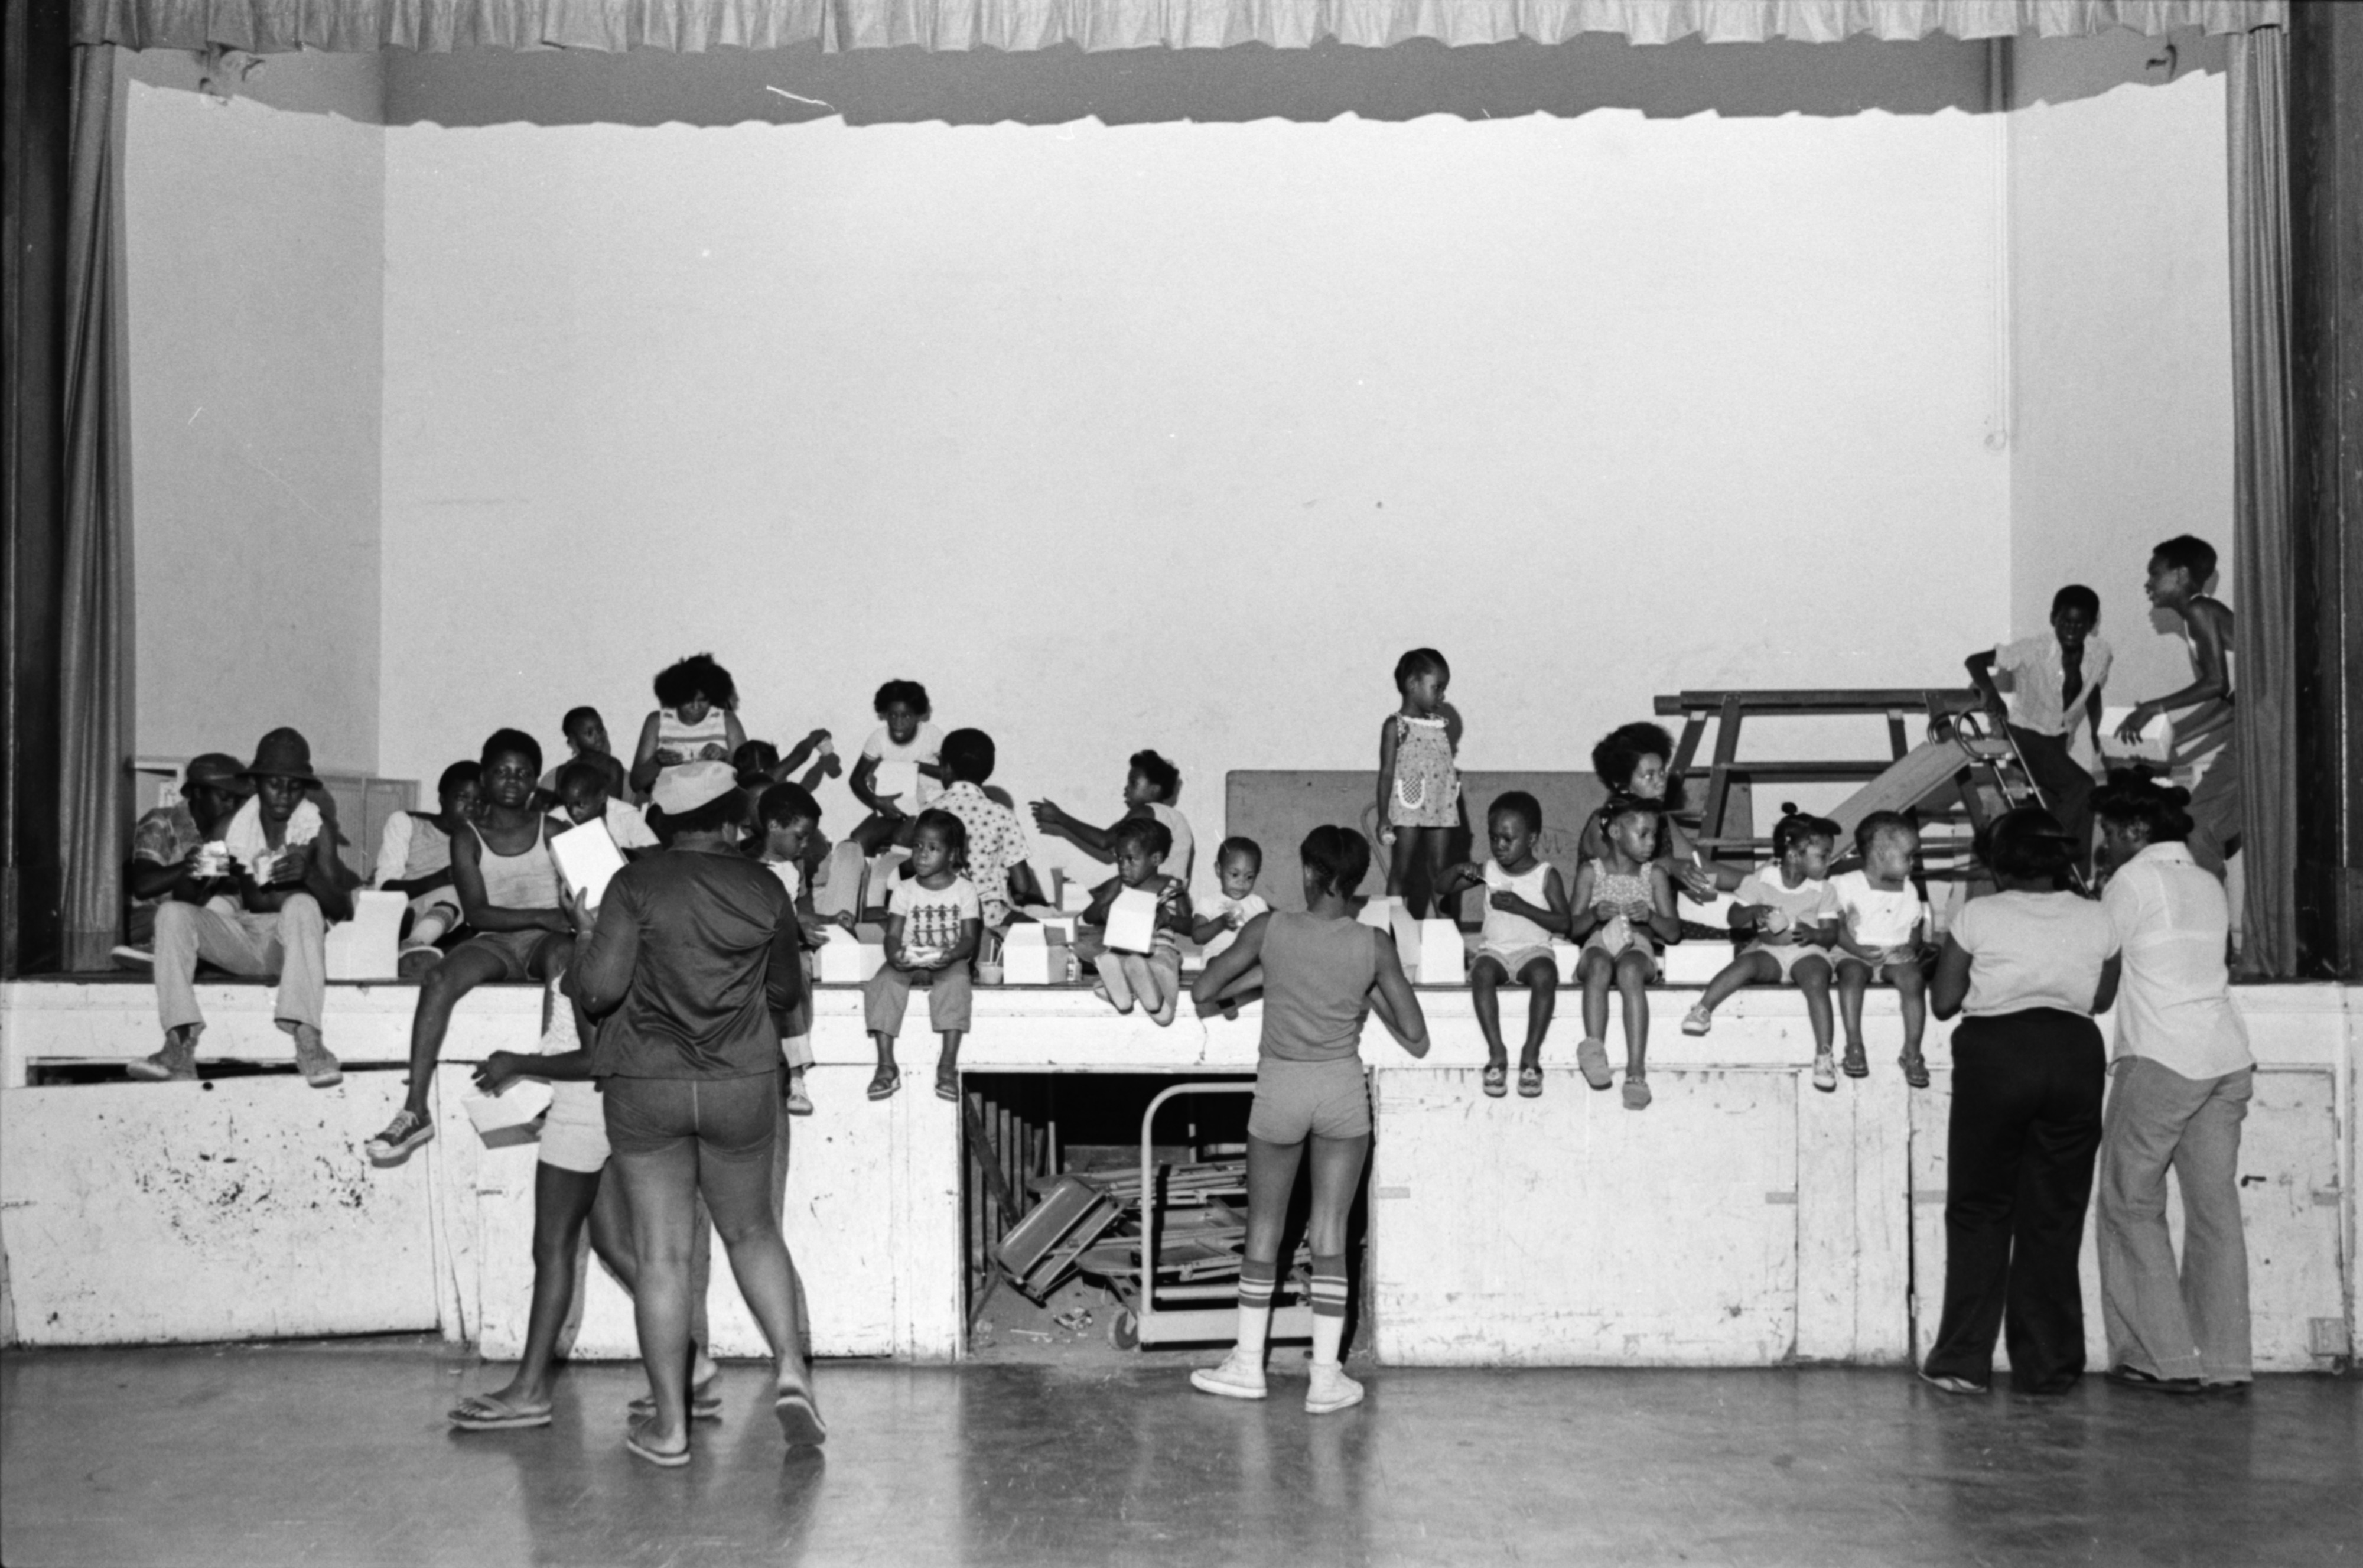 Ypsilanti Youths Eat Lunch on Stage at Parkridge Community Center, July 1978 image